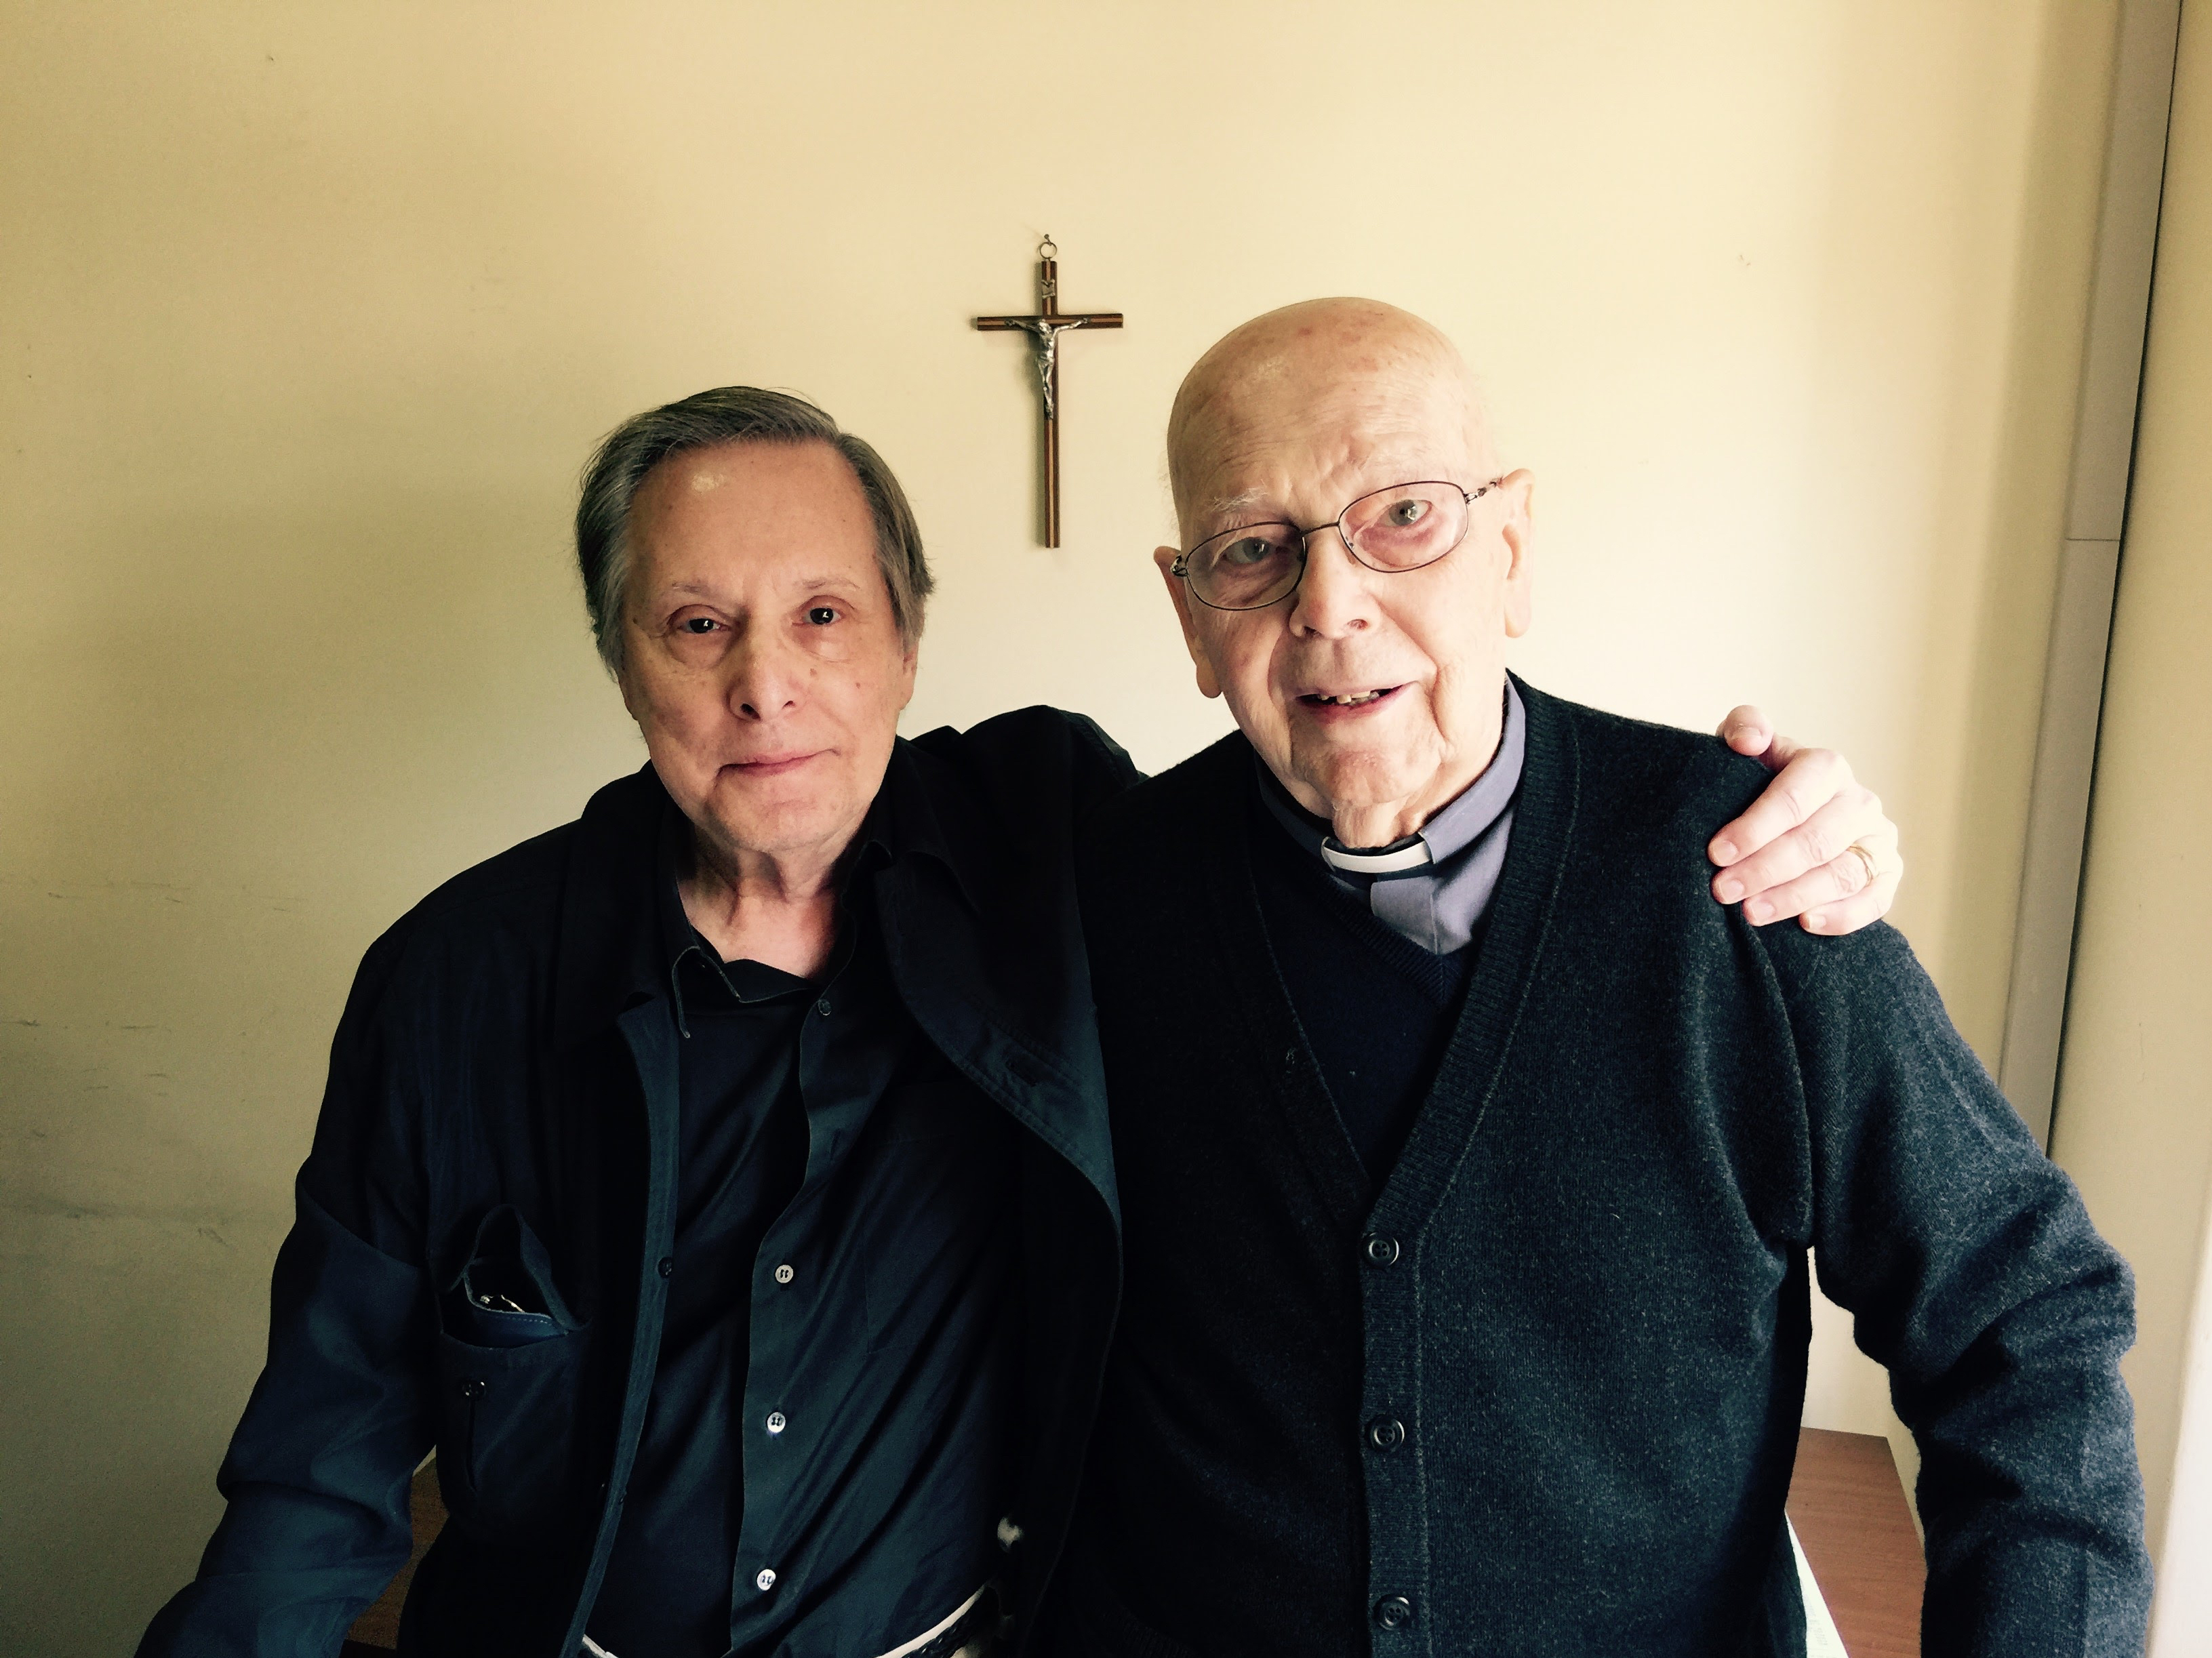 The new documentary by William Friedkin (left) centers around footage of an exorcism performed by Rev. Gabriele Amorth (right), who has performed the procedure tens of thousands of times.